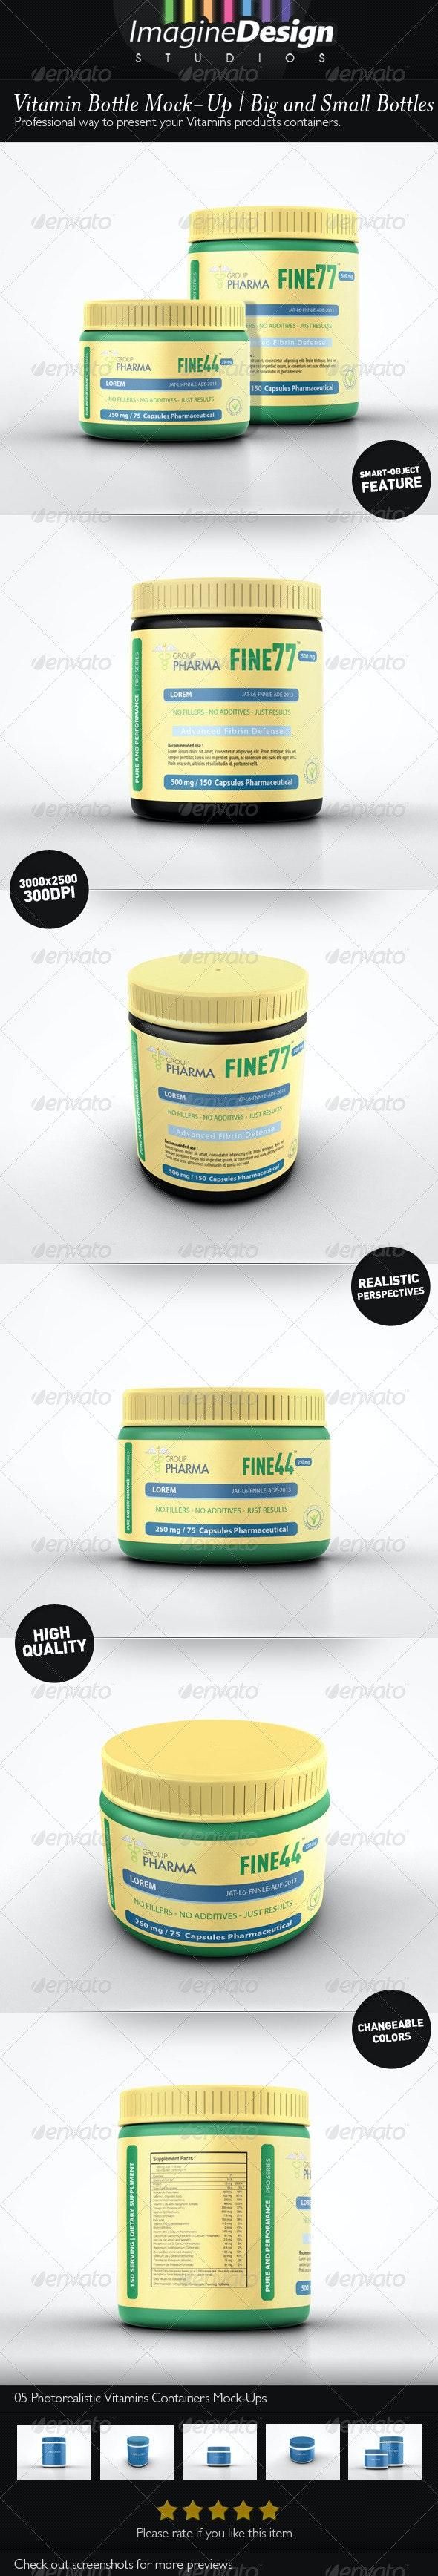 Vitamin Bottle Mockup - Packaging Product Mock-Ups